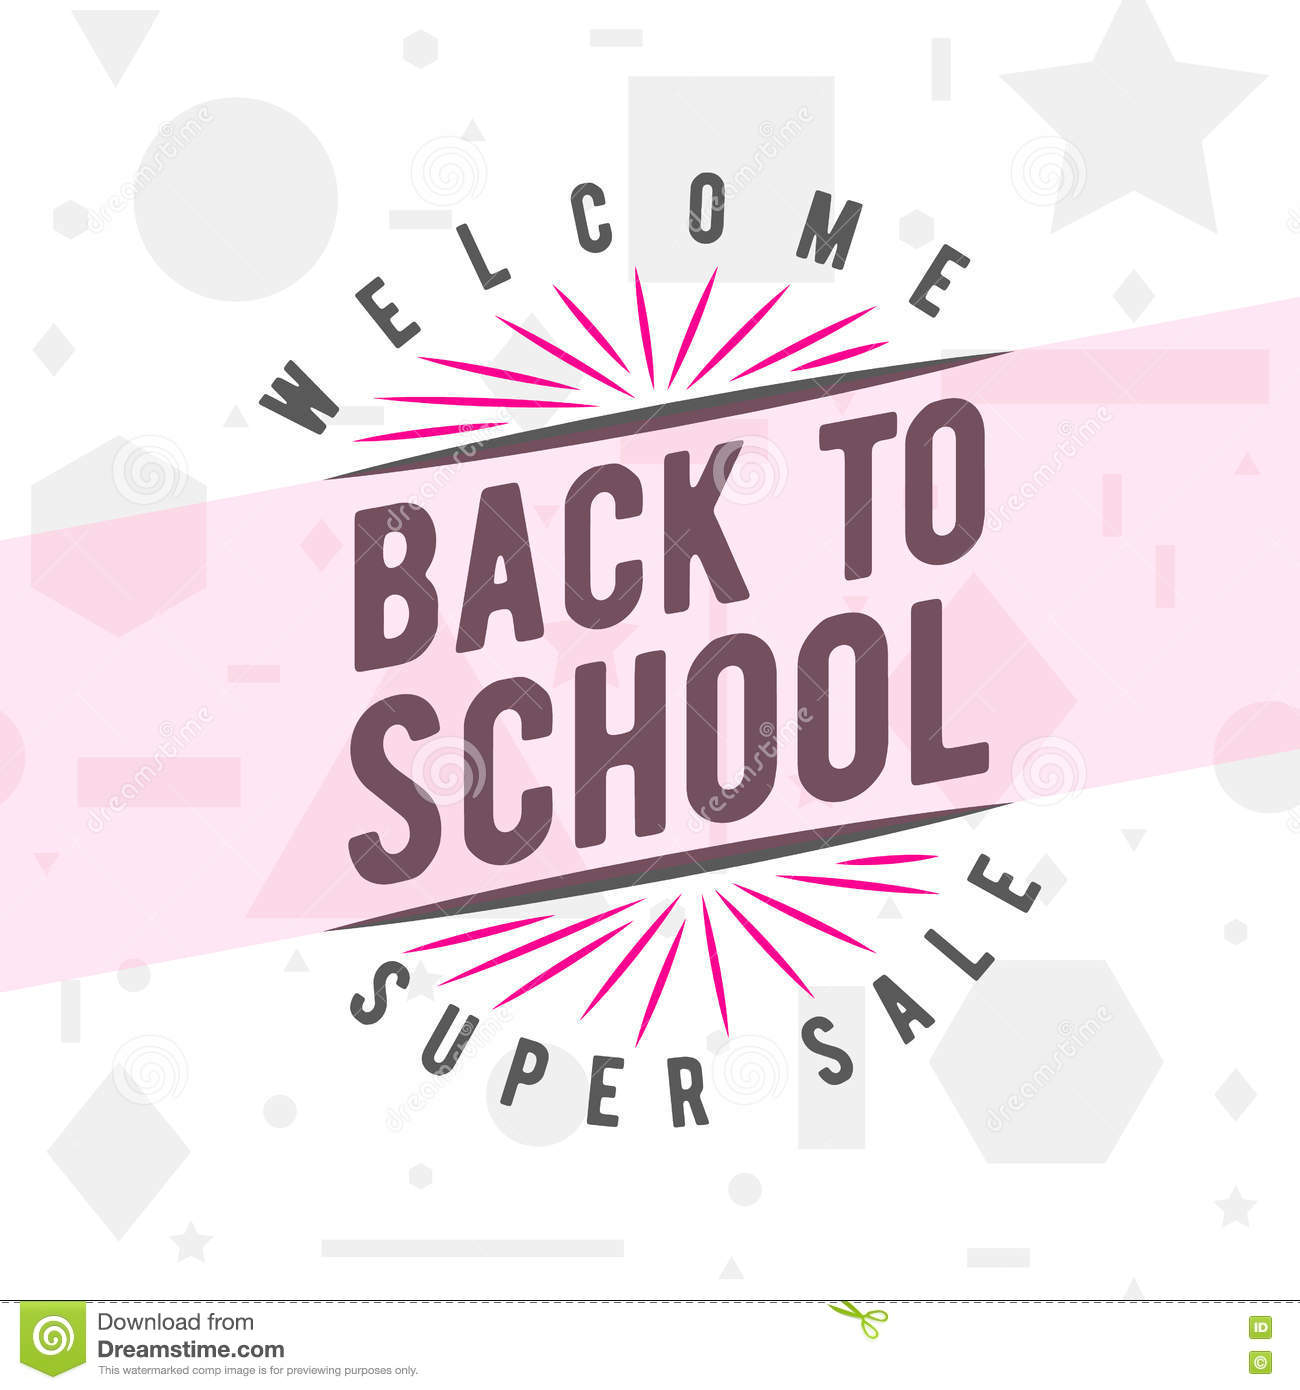 Vector illustration of back to school greeting card with typography vector illustration of back to school greeting card with typography element on seamless geometric background m4hsunfo